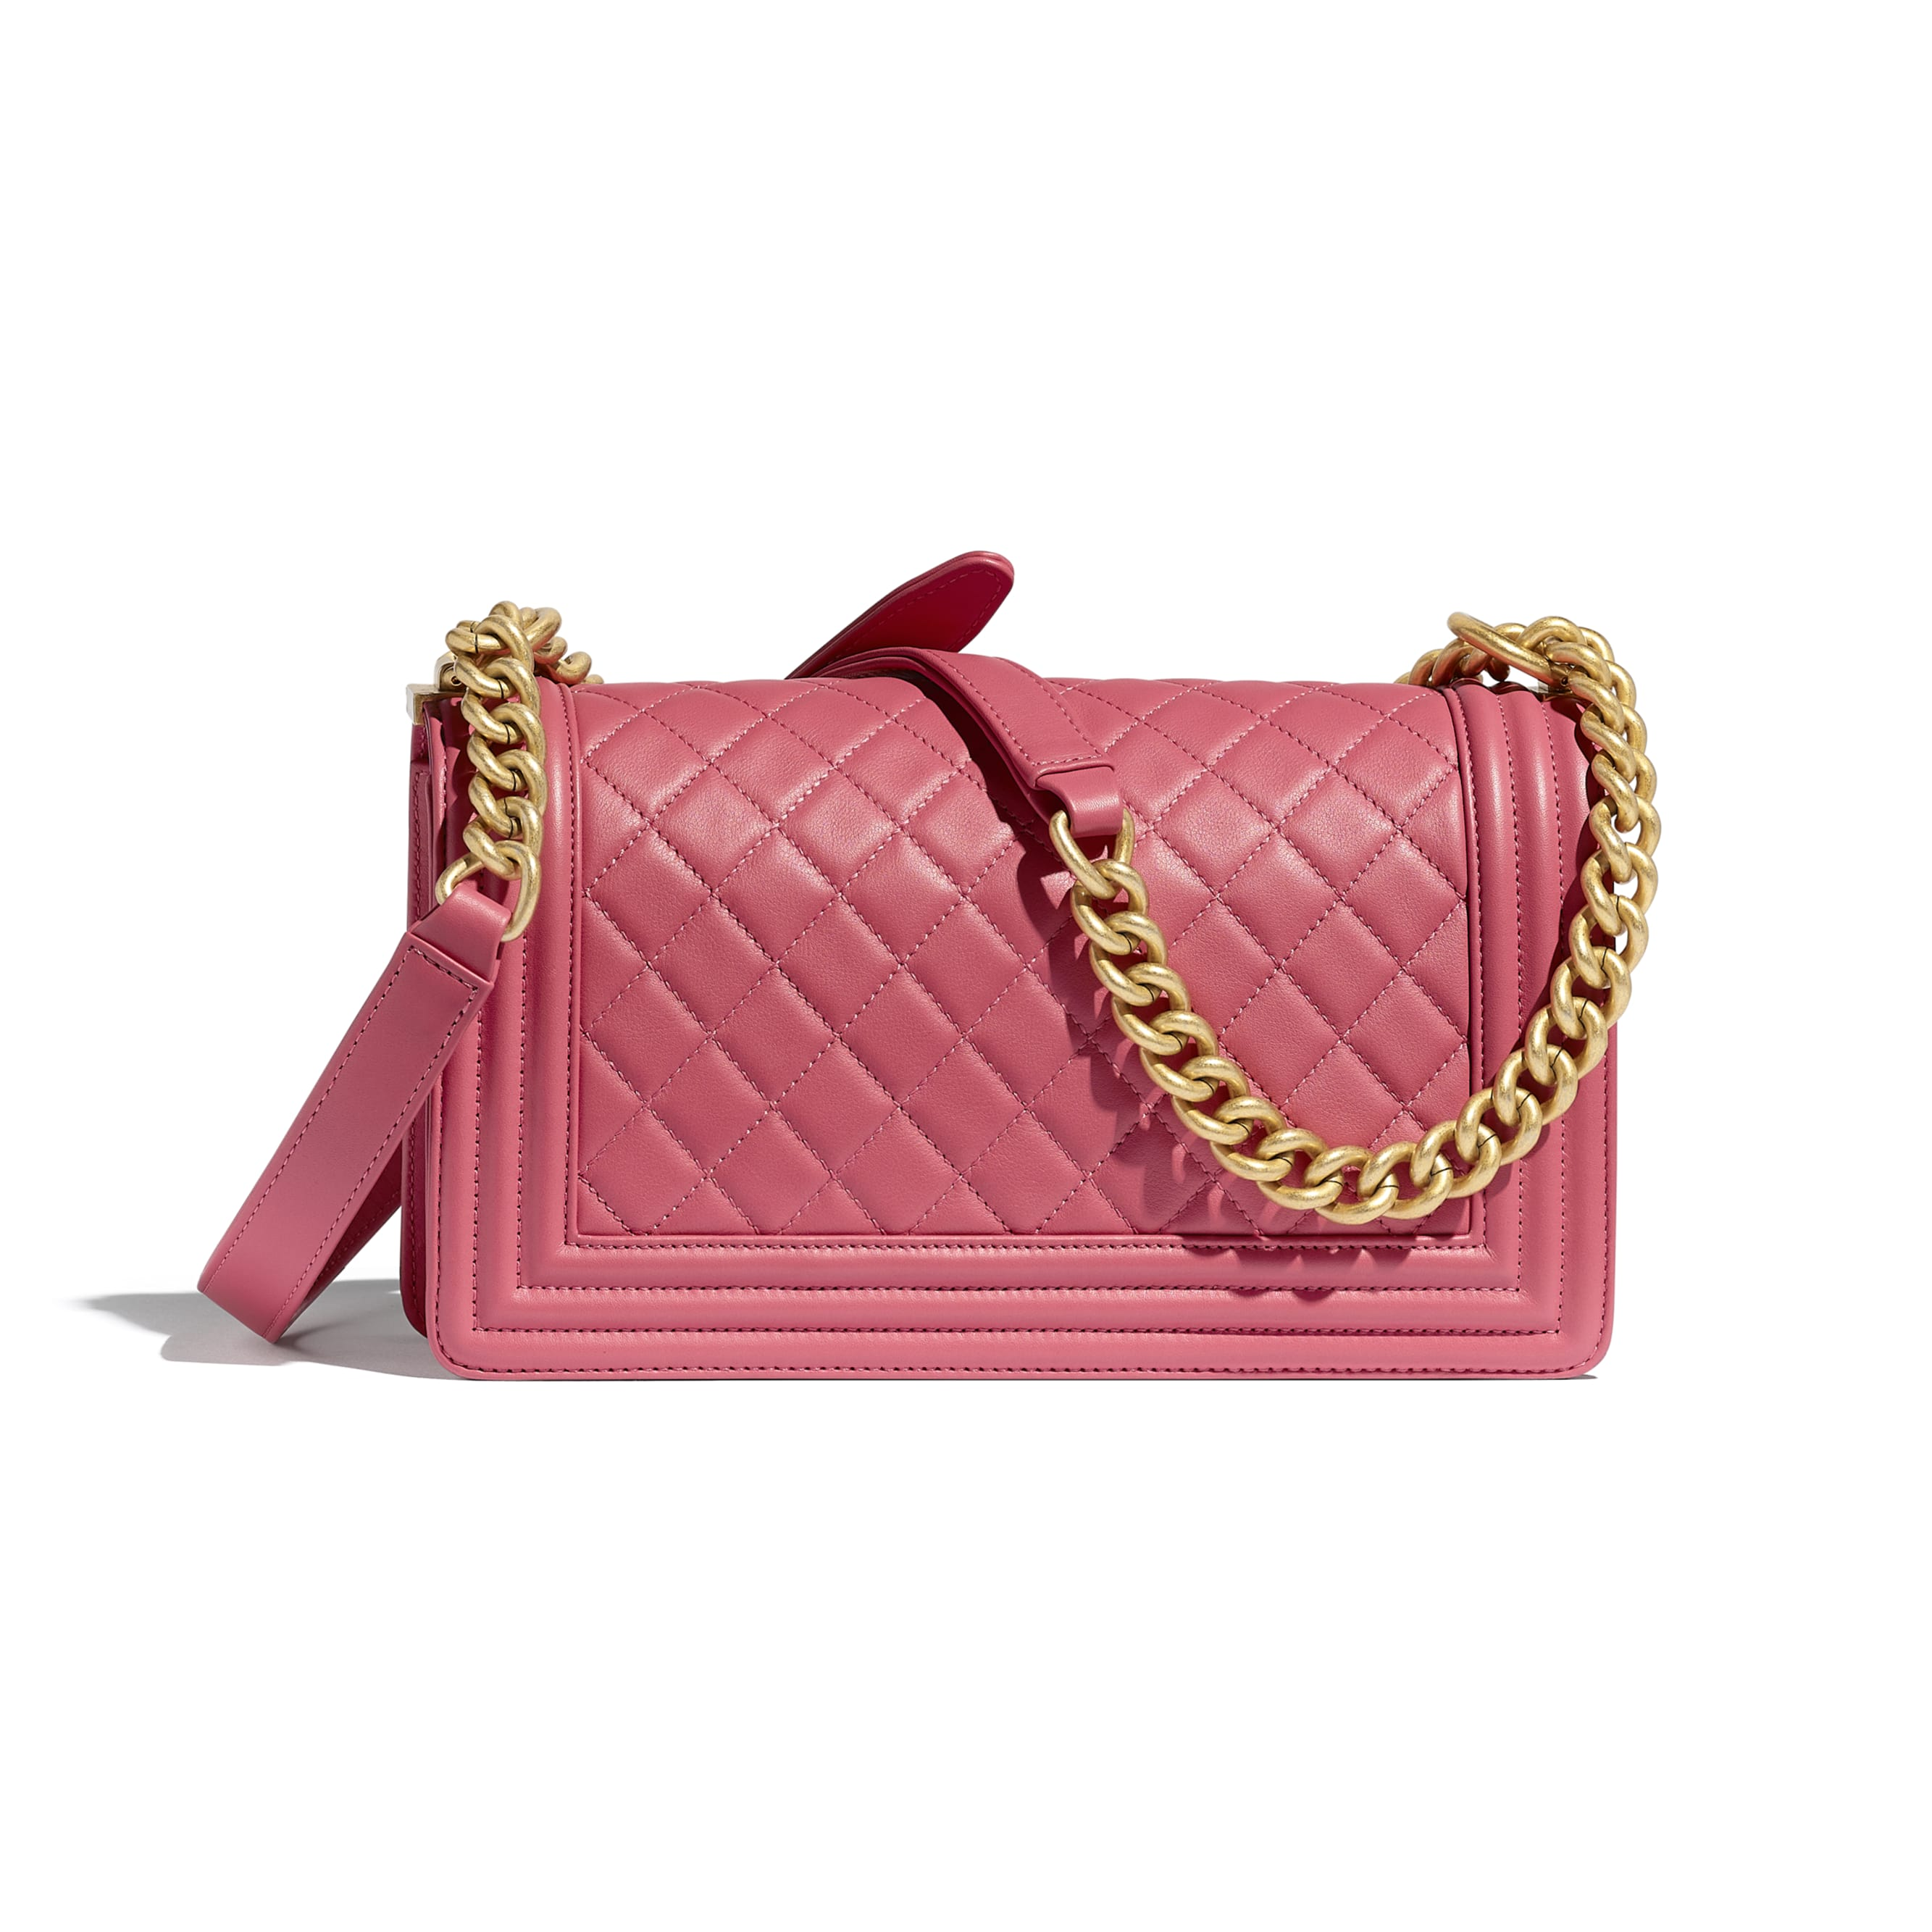 BOY CHANEL Handbag - Pink - Calfskin & Gold-Tone Metal - CHANEL - Alternative view - see standard sized version